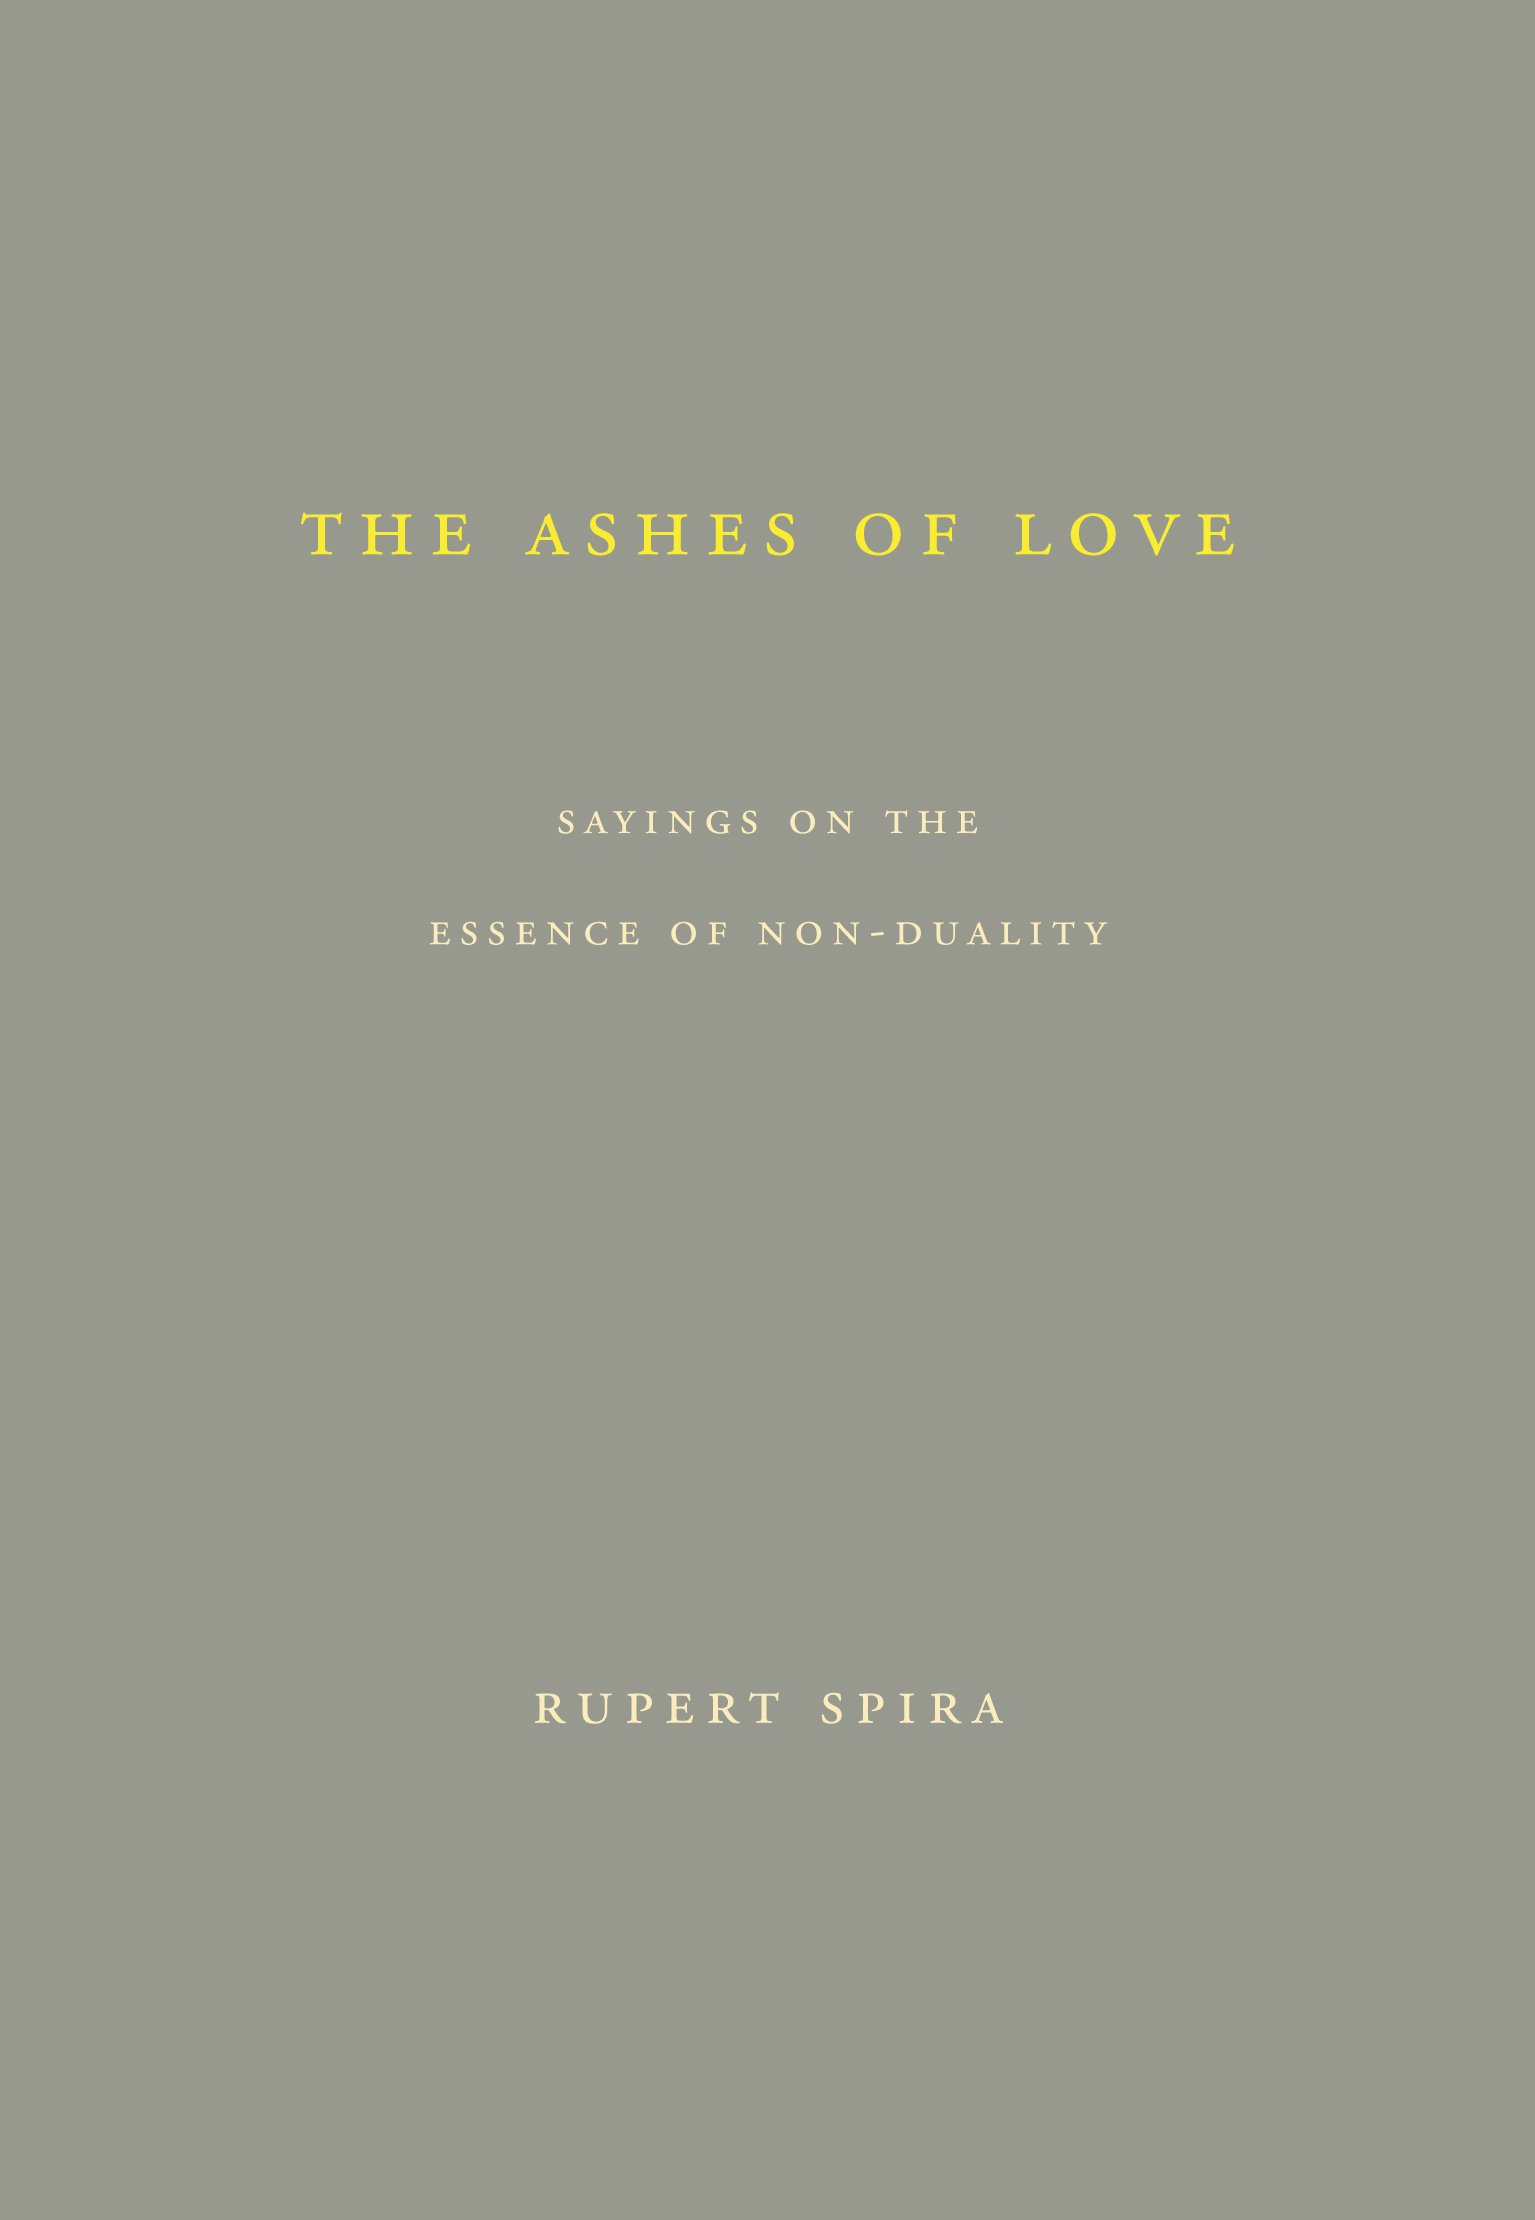 The Ashes of Love: Sayings on the Essence of Non-Duality